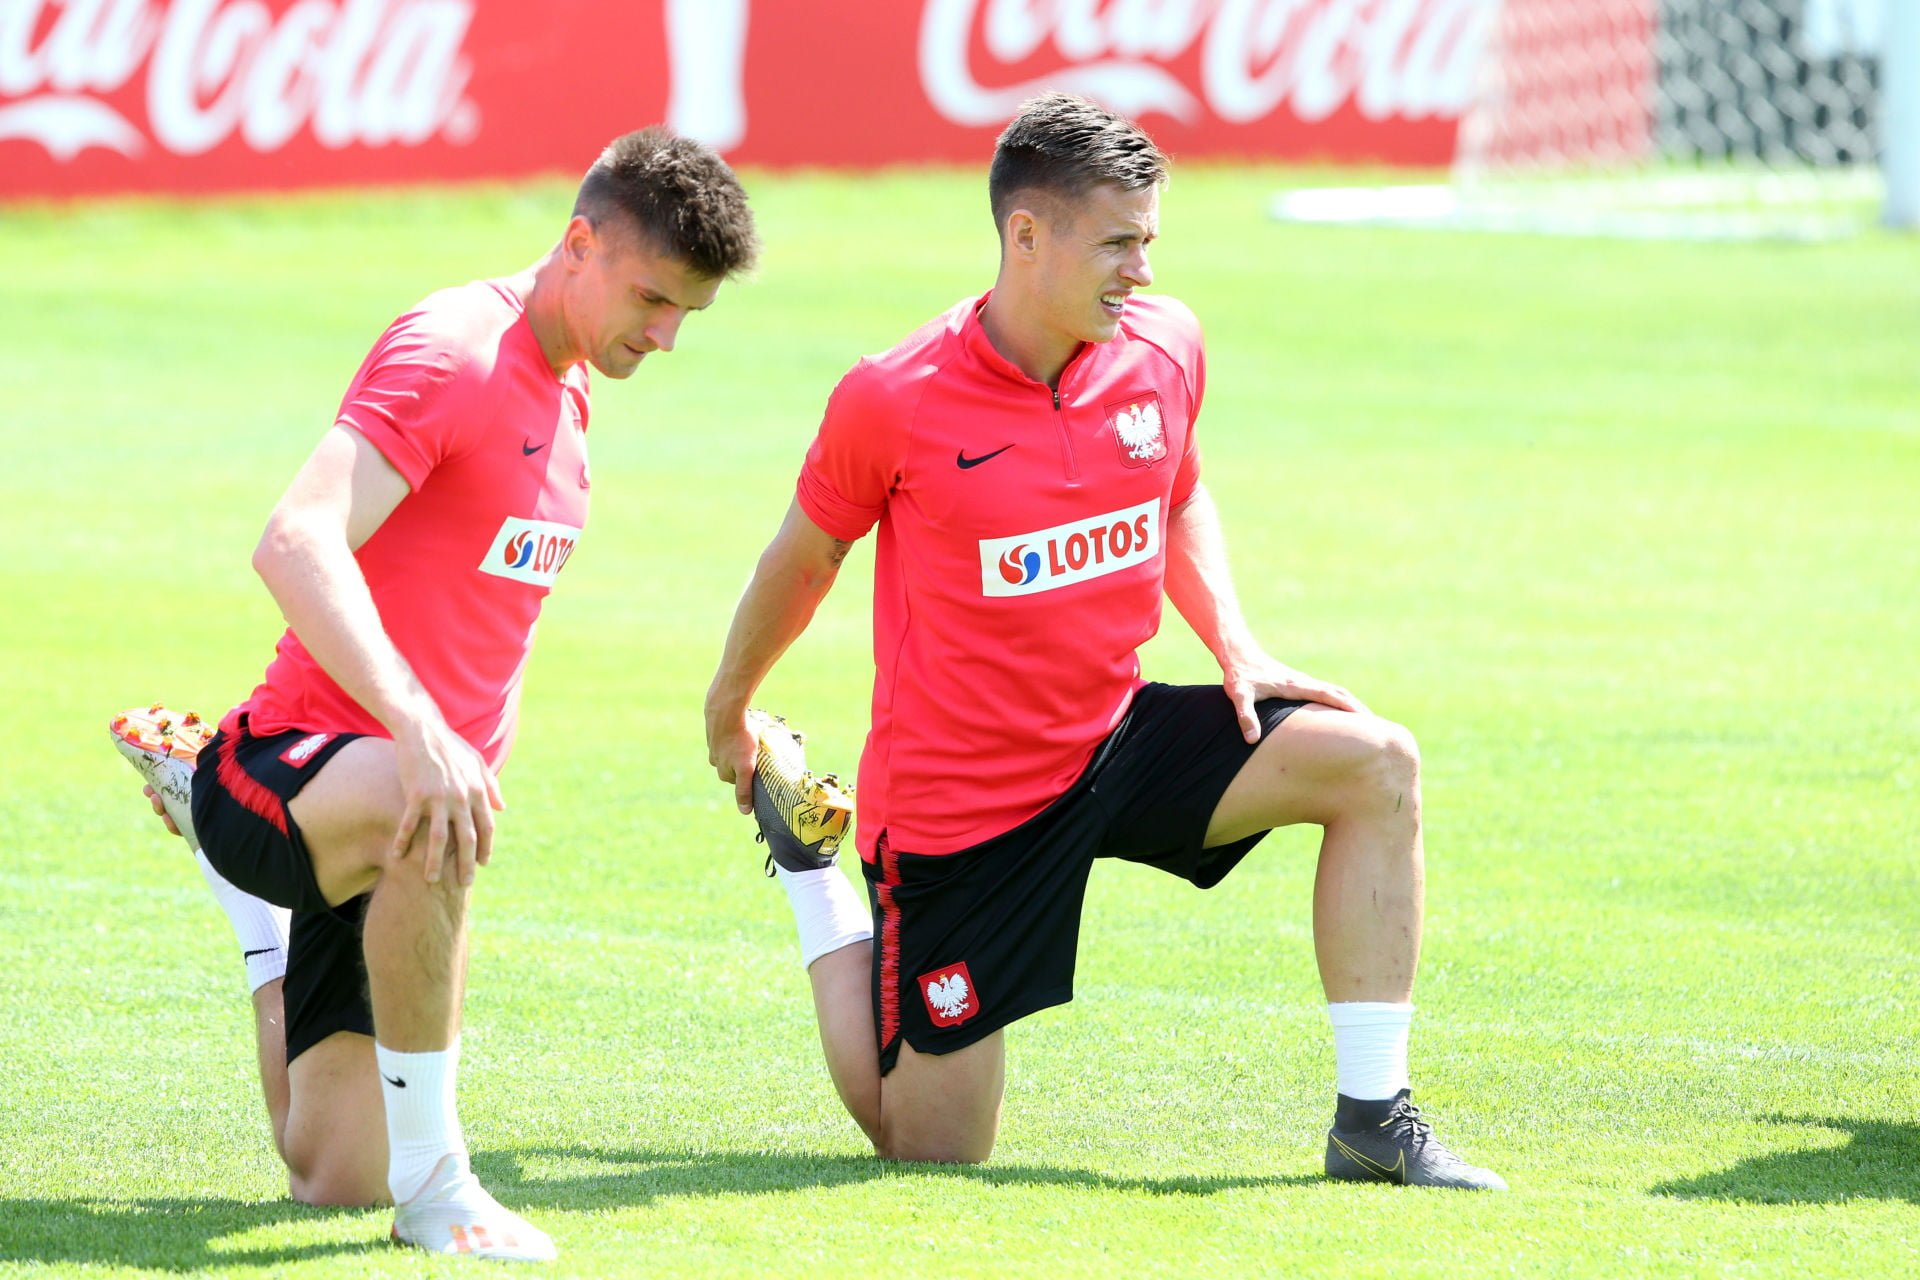 WARSZAWA 04.06.2019 TRENING REPREZENTACJI POLSKI --- POLISH FOOTBALL NATIONAL TEAM TRAINING SESSION IN WARSAW KRZYSZTOF PIATEK DAMIAN KADZIOR FOT. PIOTR KUCZA/ 400mm.pl